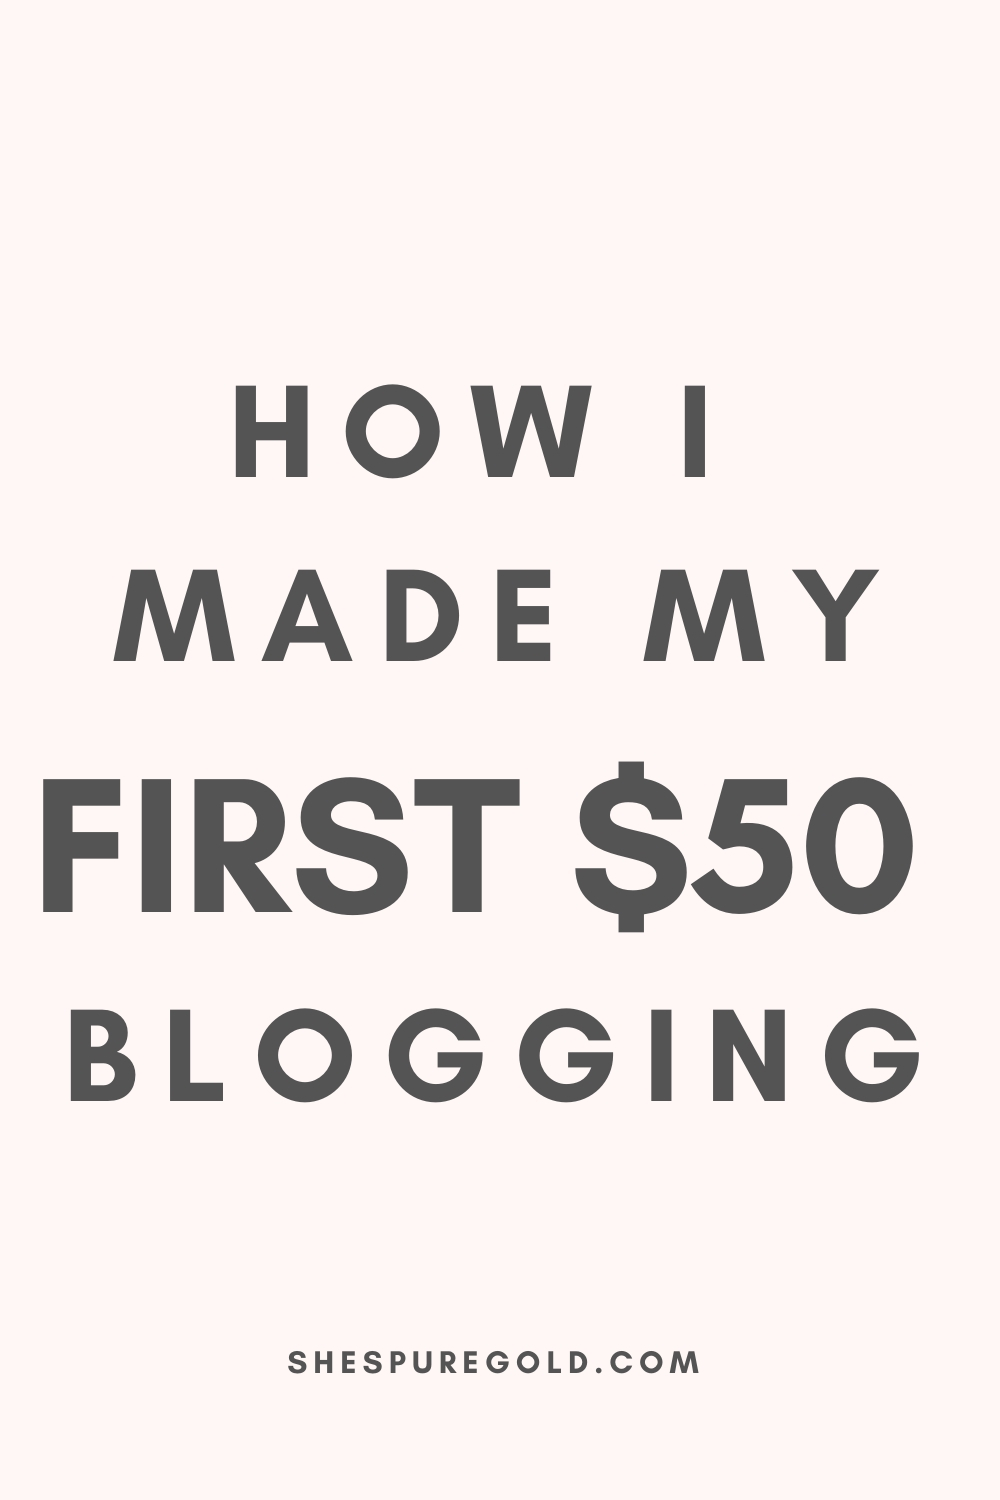 how I made my first $50 blogging